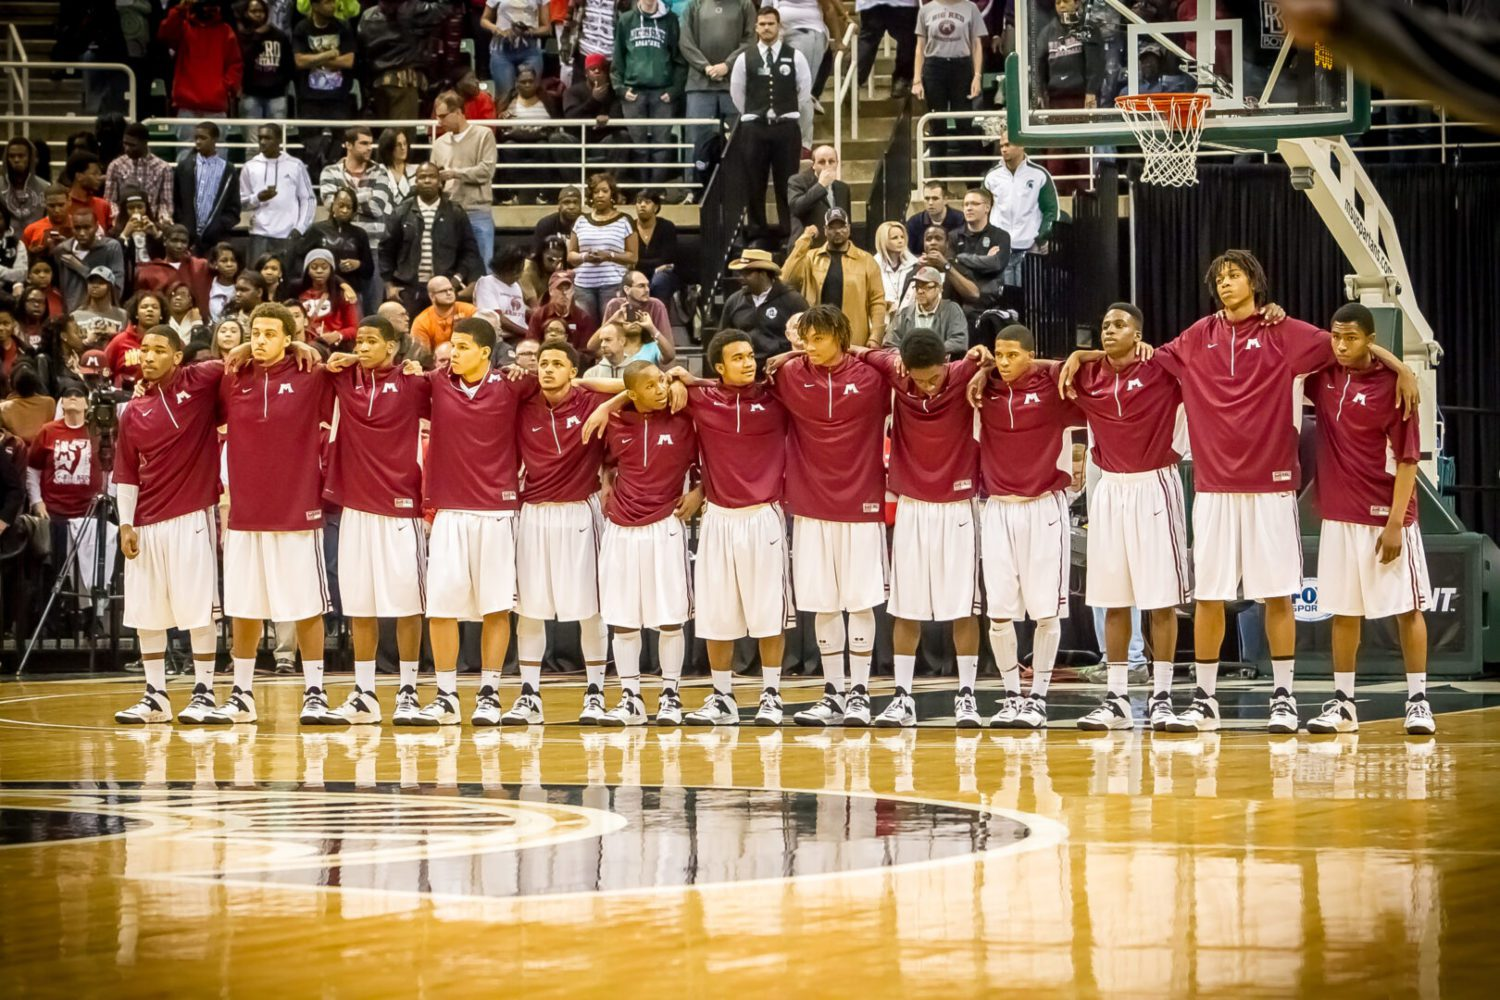 Big Reds now ranked No. 20 in the nation, USA Today Super 25 moves Muskegon up two spots